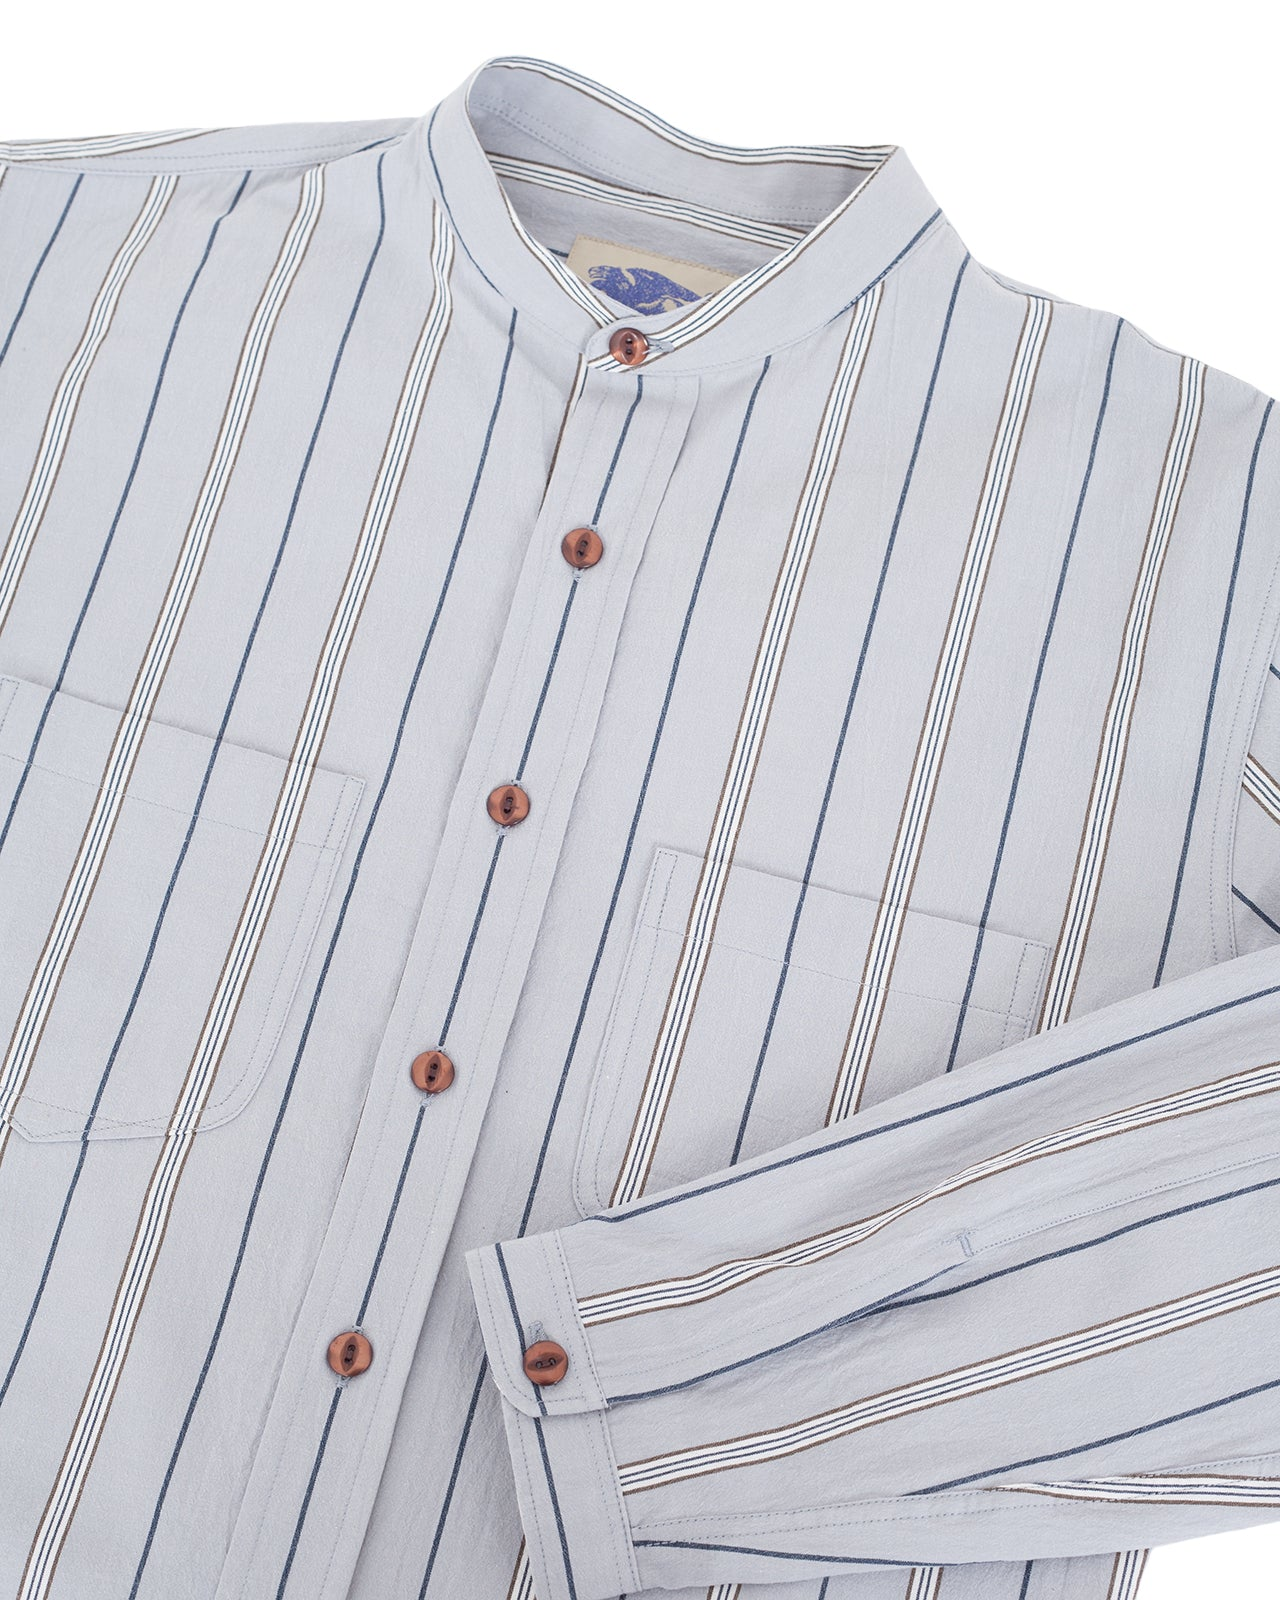 Indigofera Muir Shirt, Cotton Stripe, Grey / White / Navy